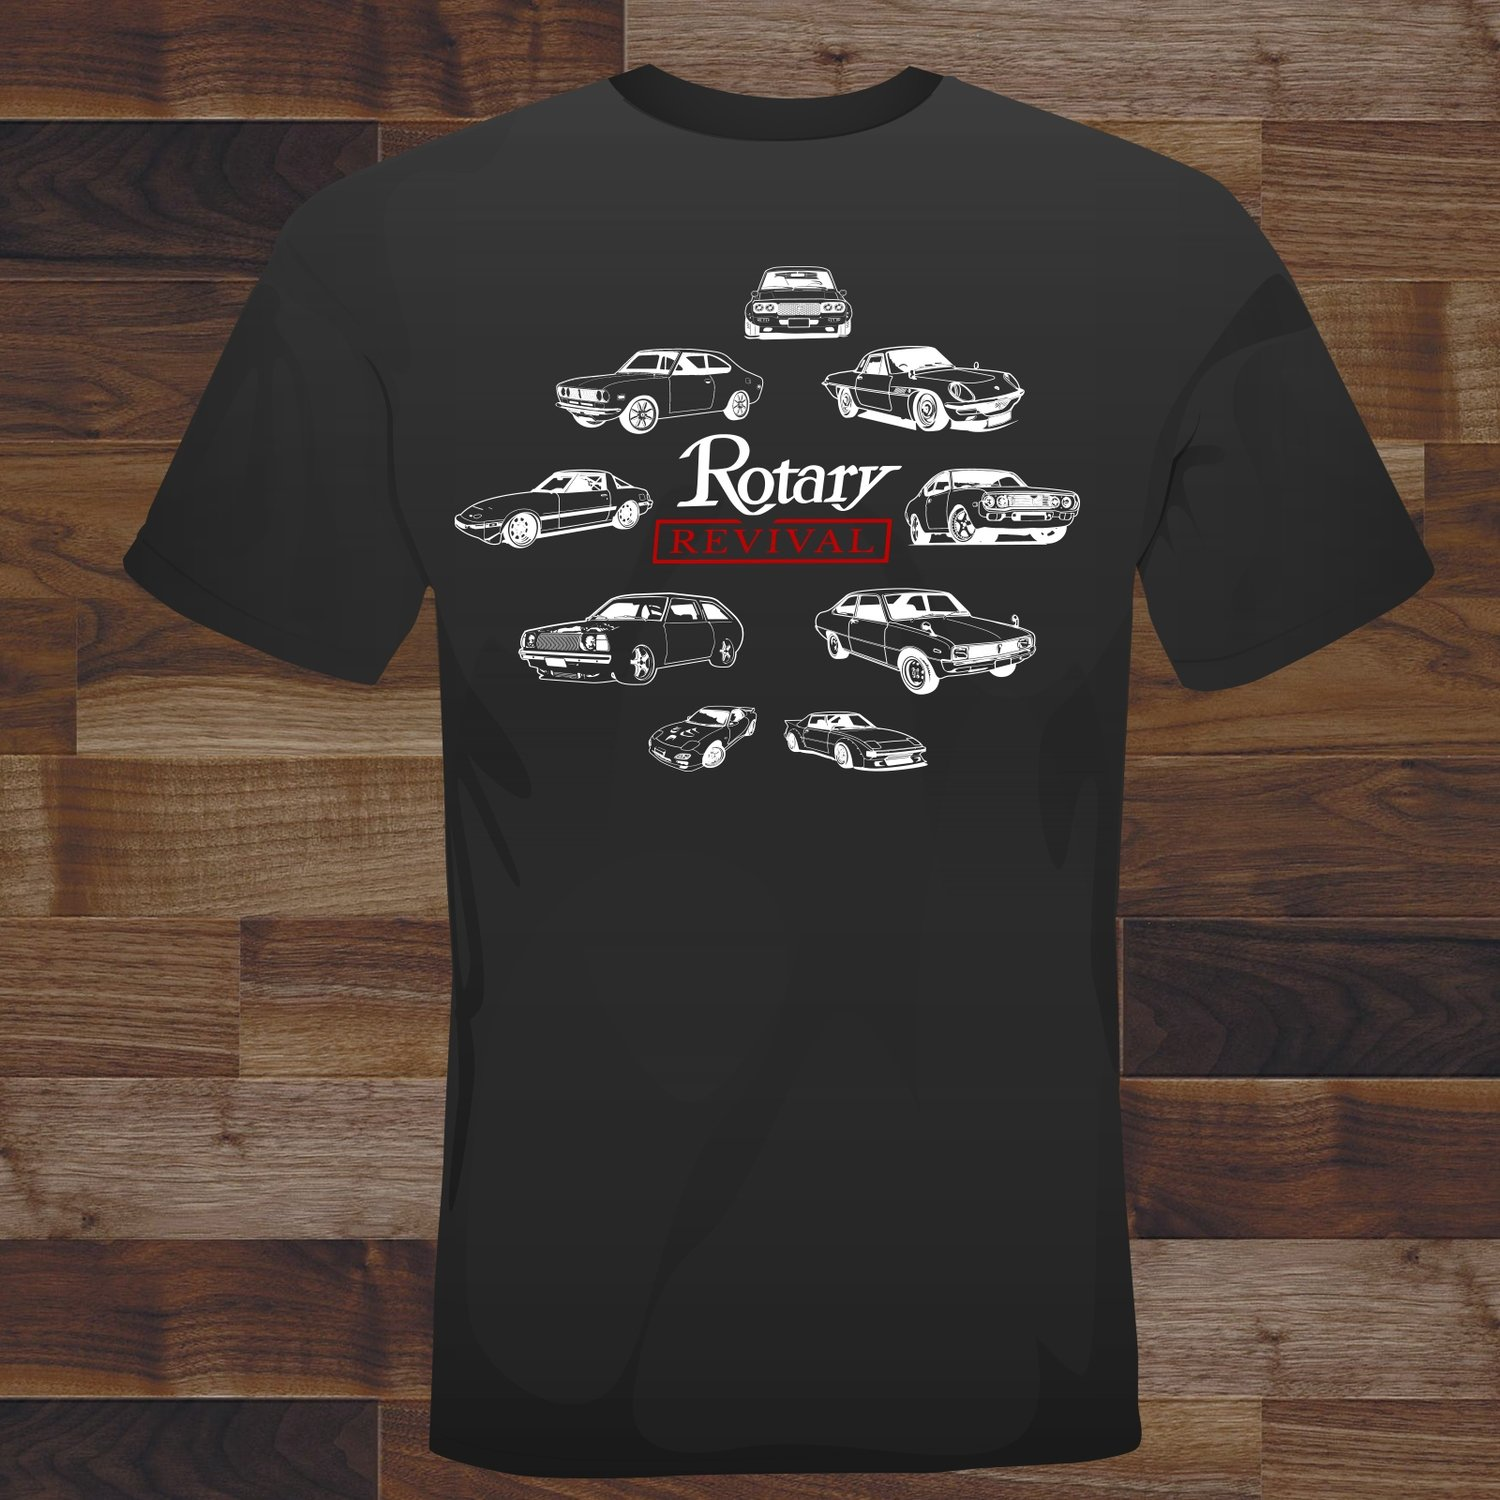 2018 Rotary Revival Event T-Shirt